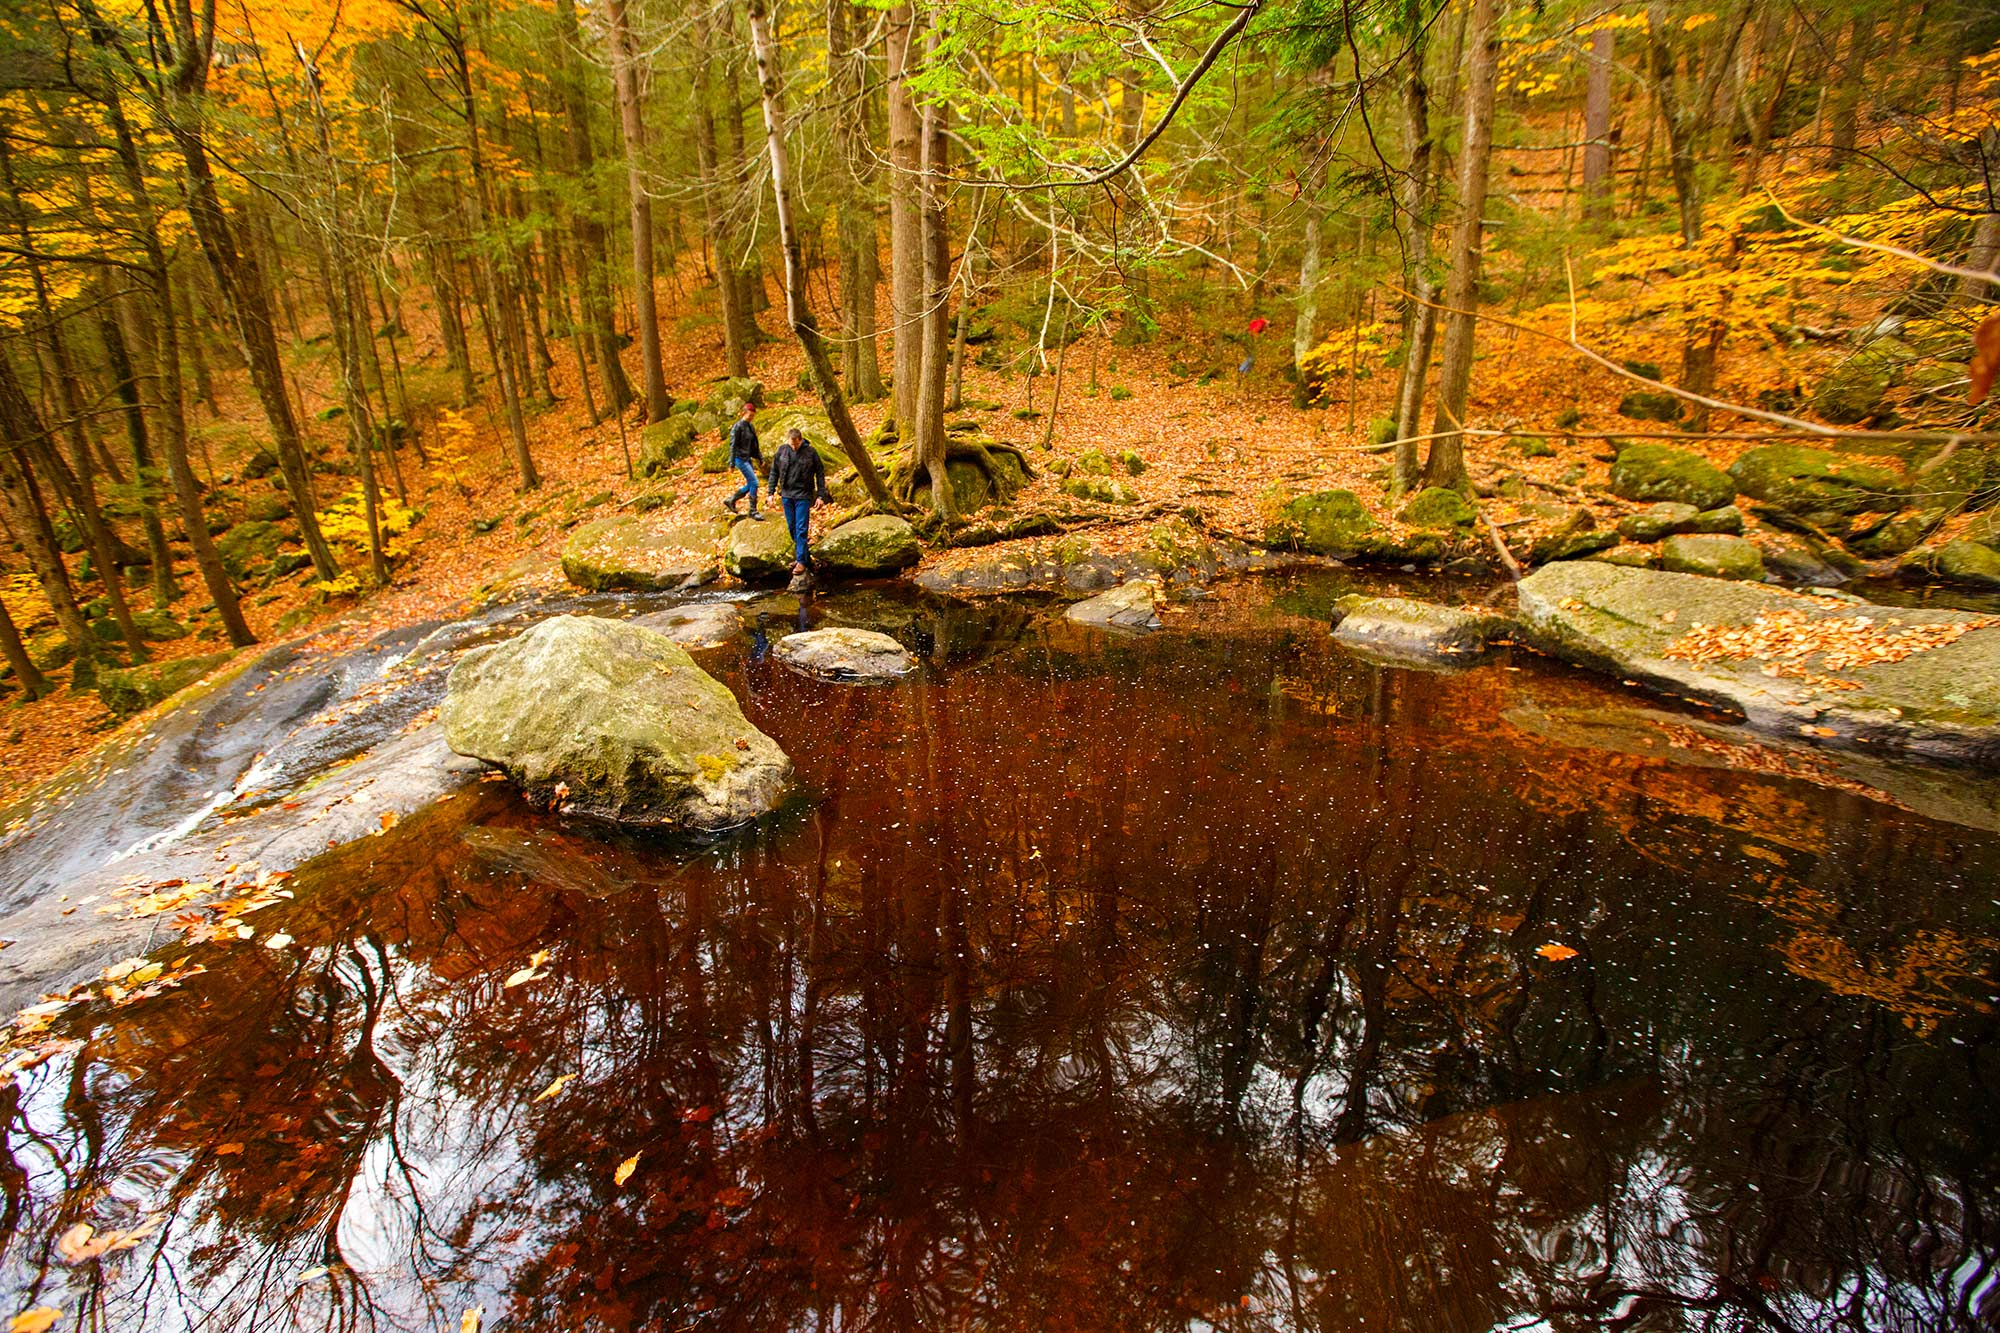 Enders State Forest, Granby, CT - 11/1